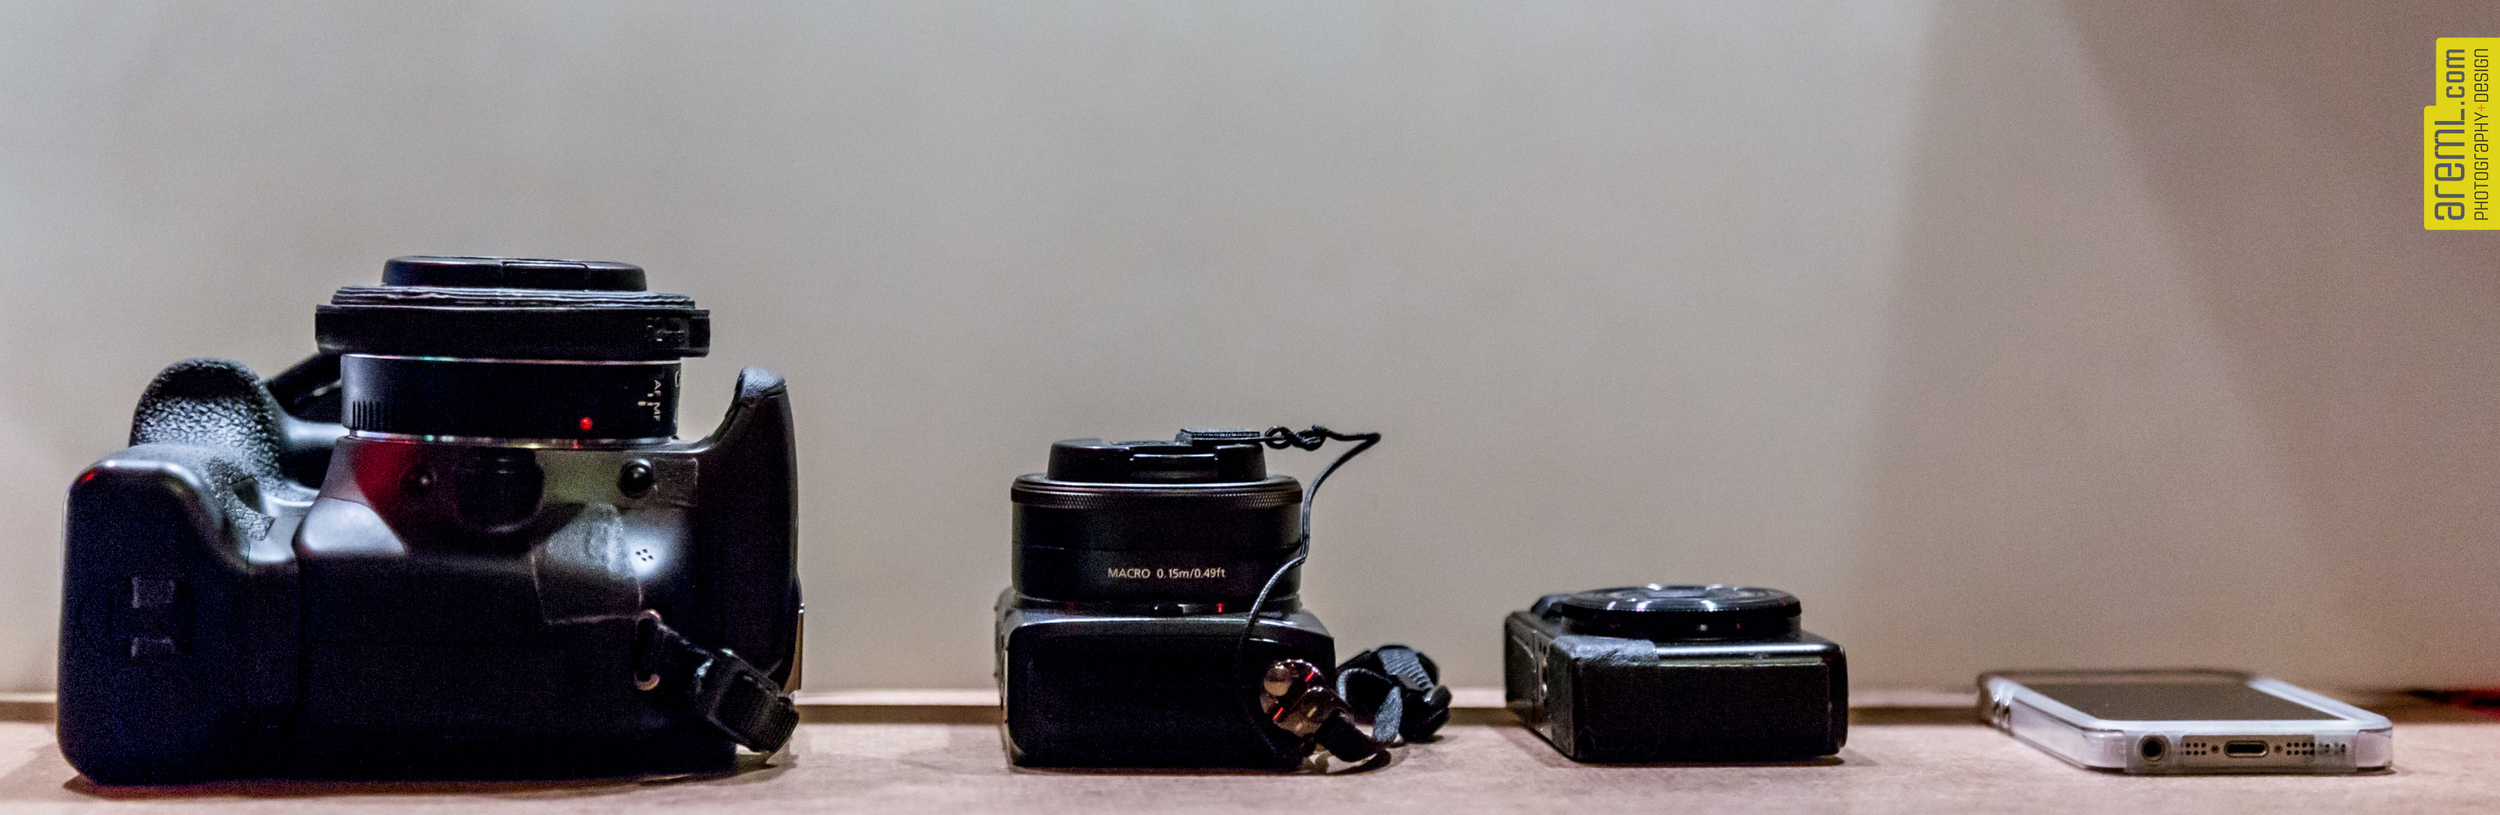 Canon EOS T2i with 40mm pancake, EOS M w 22mm, Canon Powershot s90 and my iPhone 5